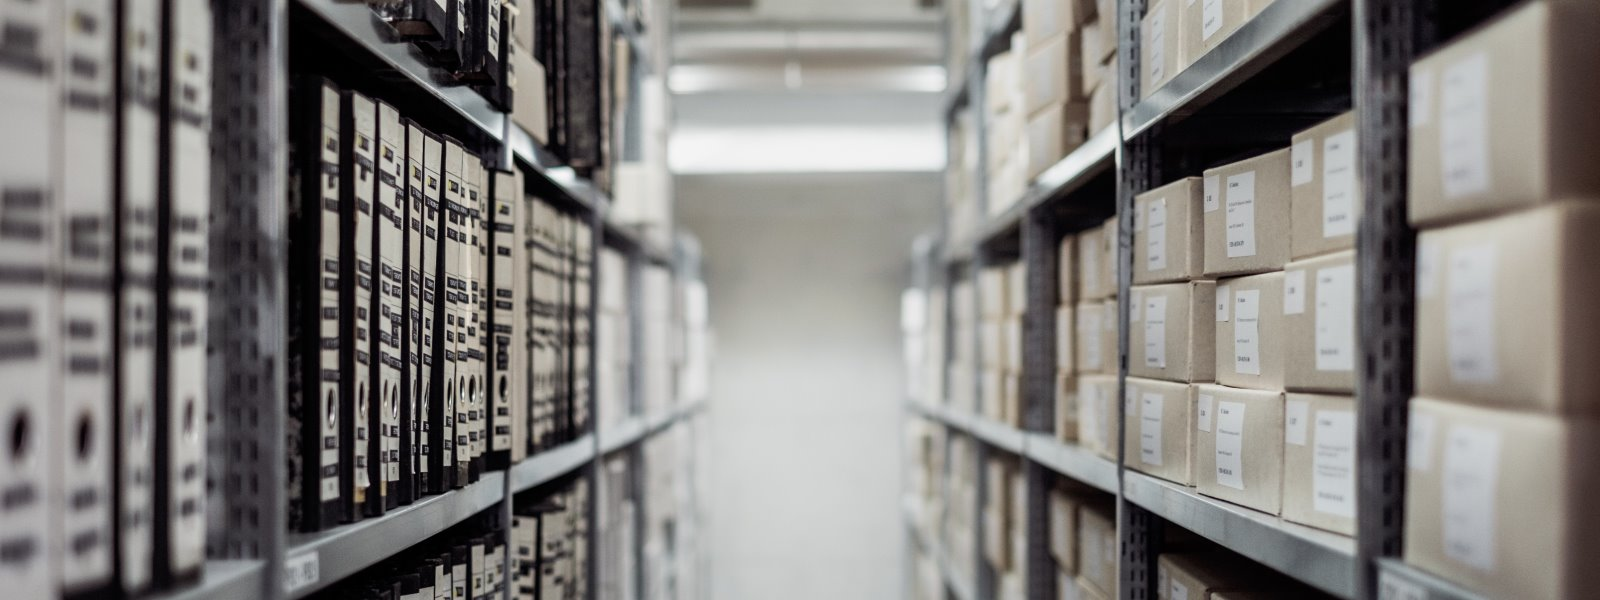 Maintaining records of processing activities